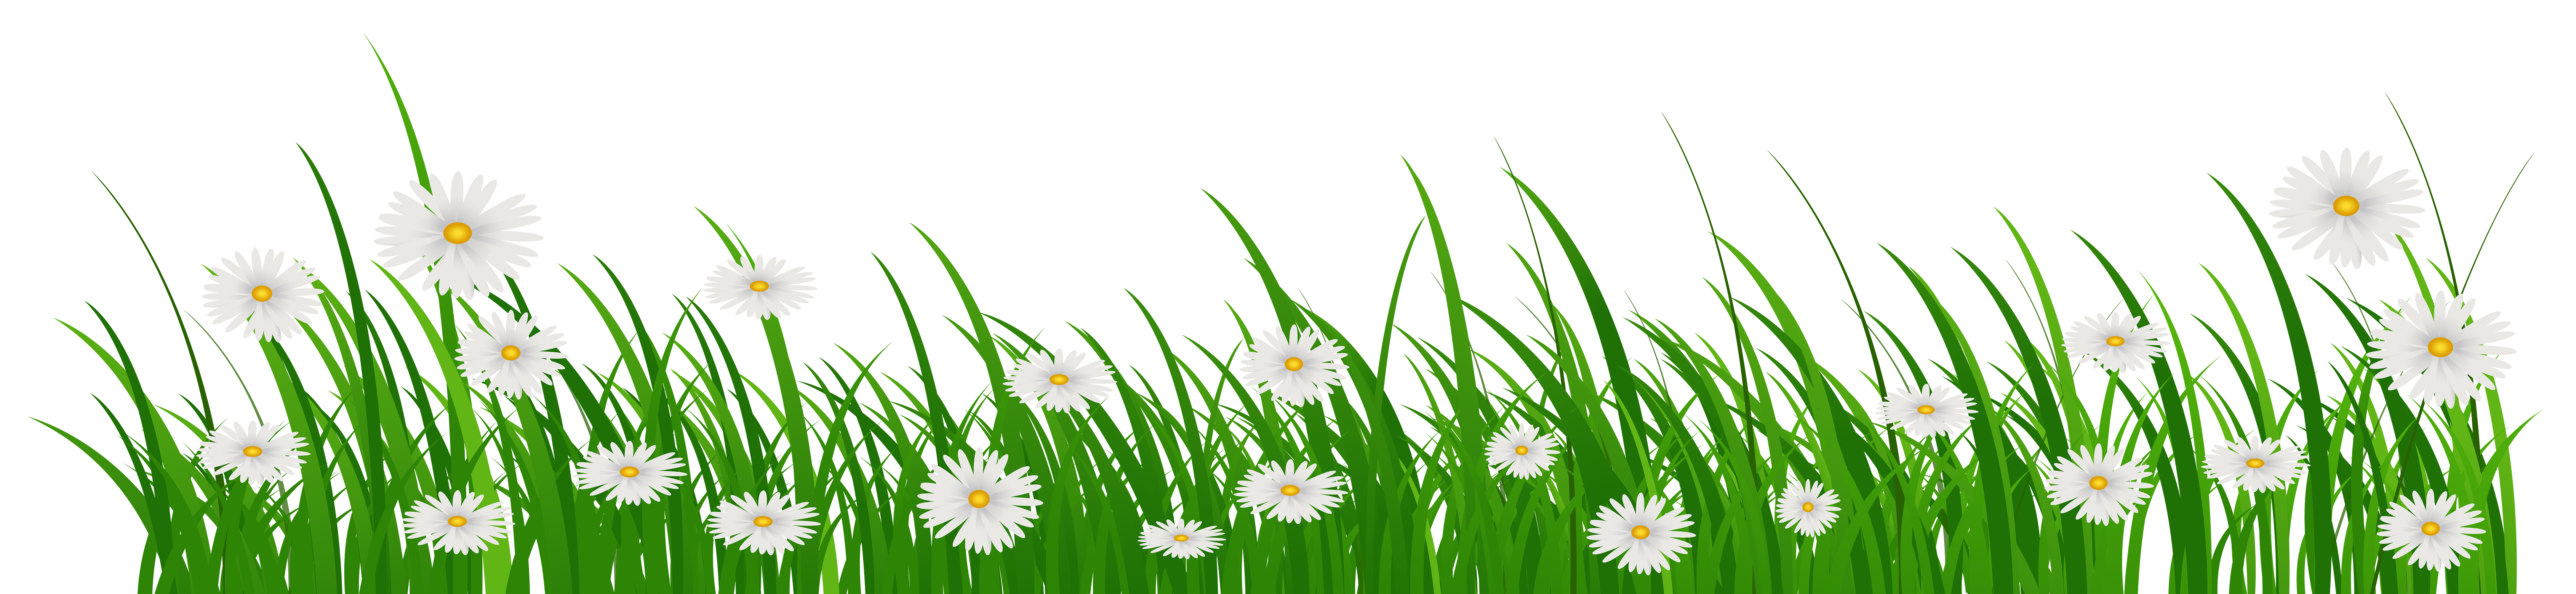 Clipart grass flower. With flowers png clip